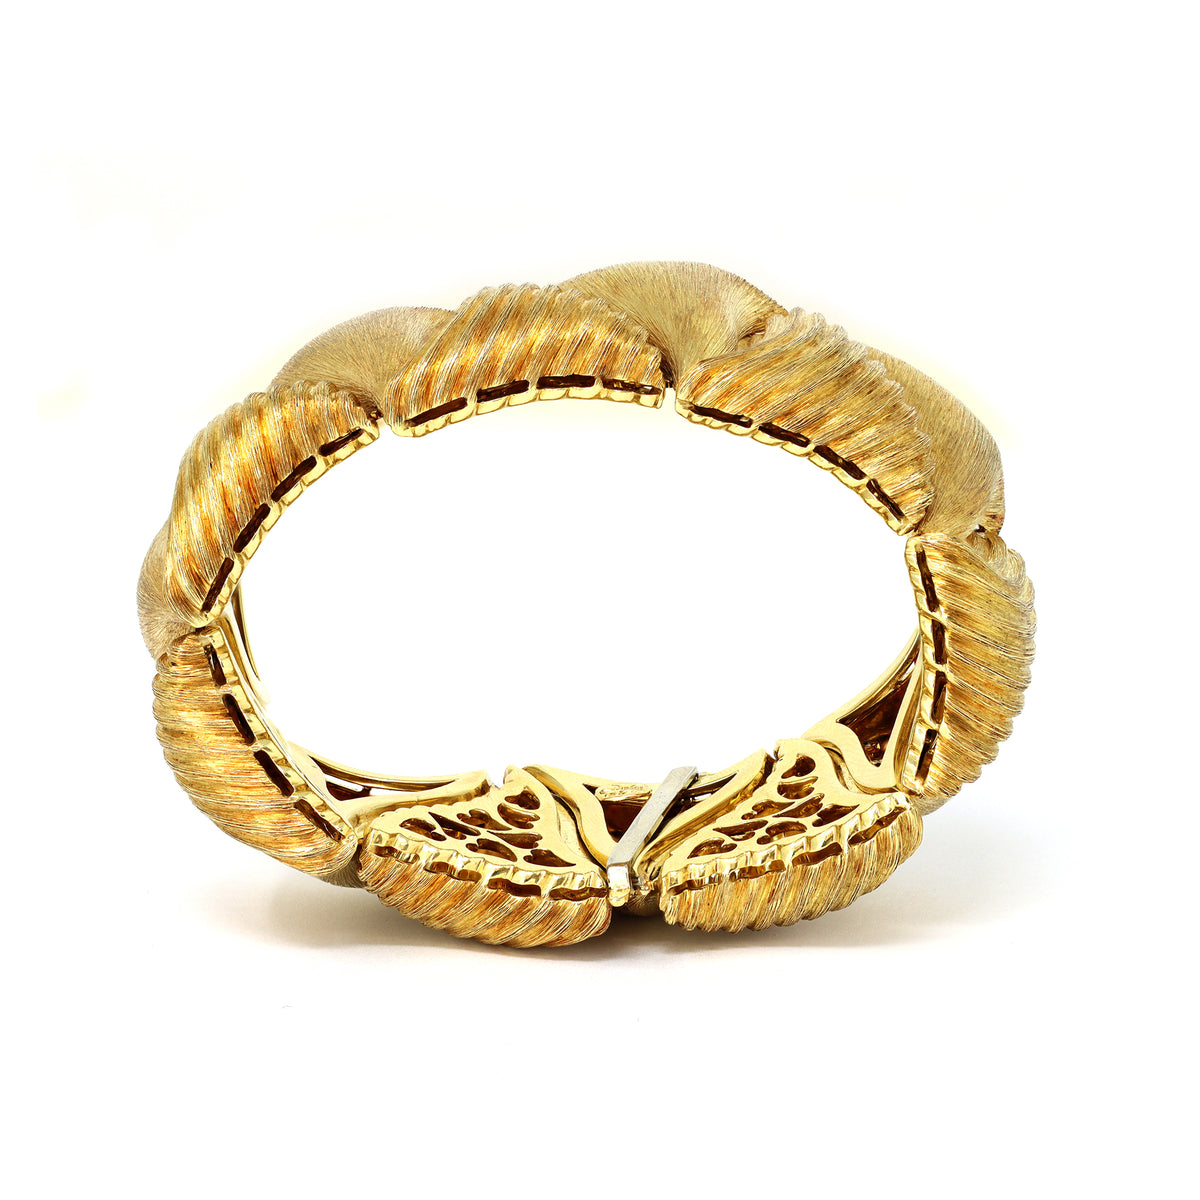 Henry Dunay Textured 18k Gold Link Bracelet side view